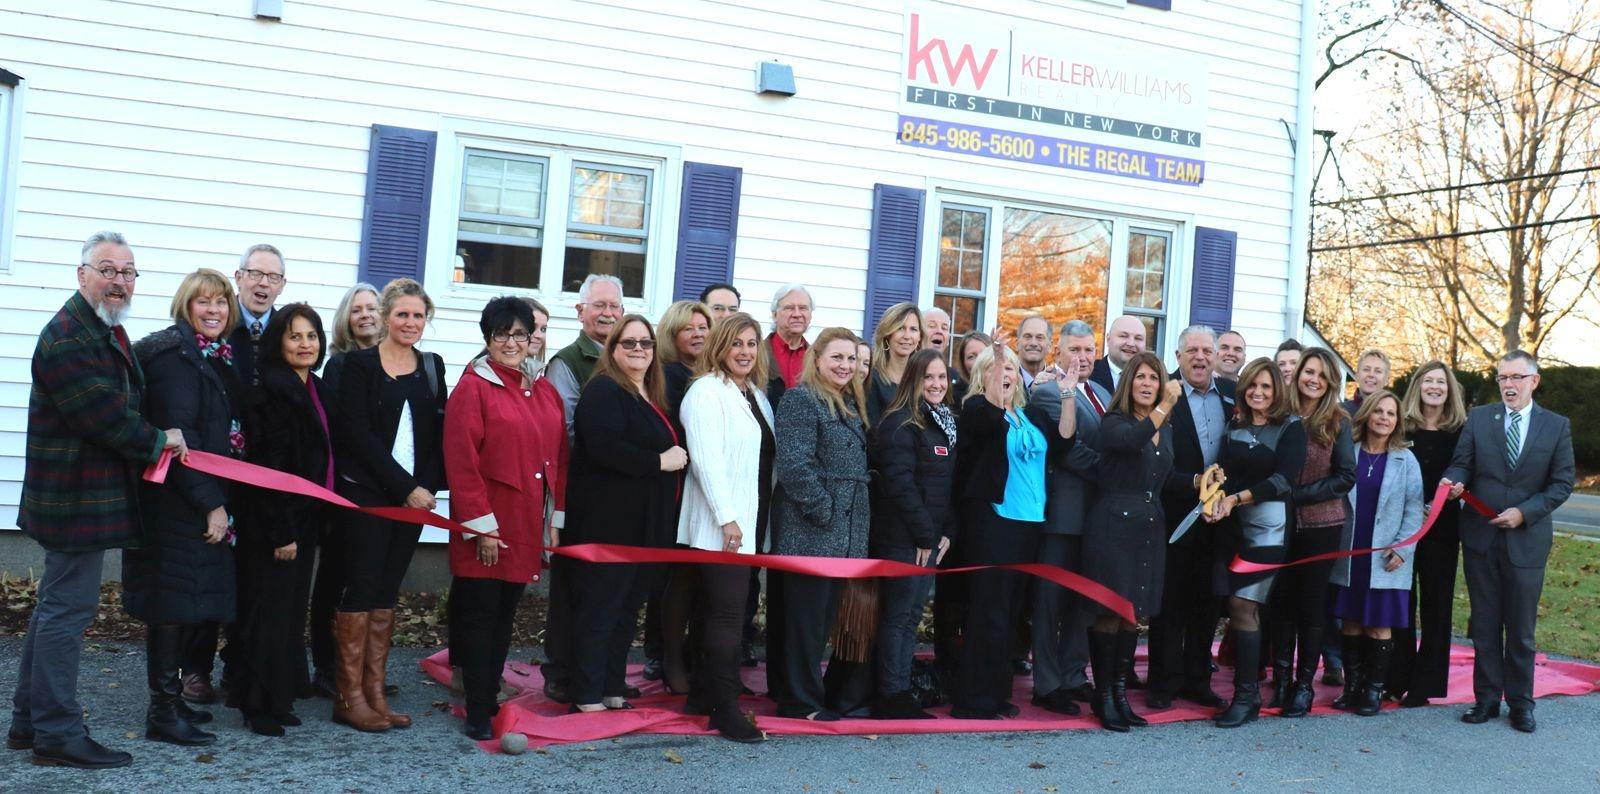 Regal Keller Keller Williams And Regal Homes And Properties Combine Forces To